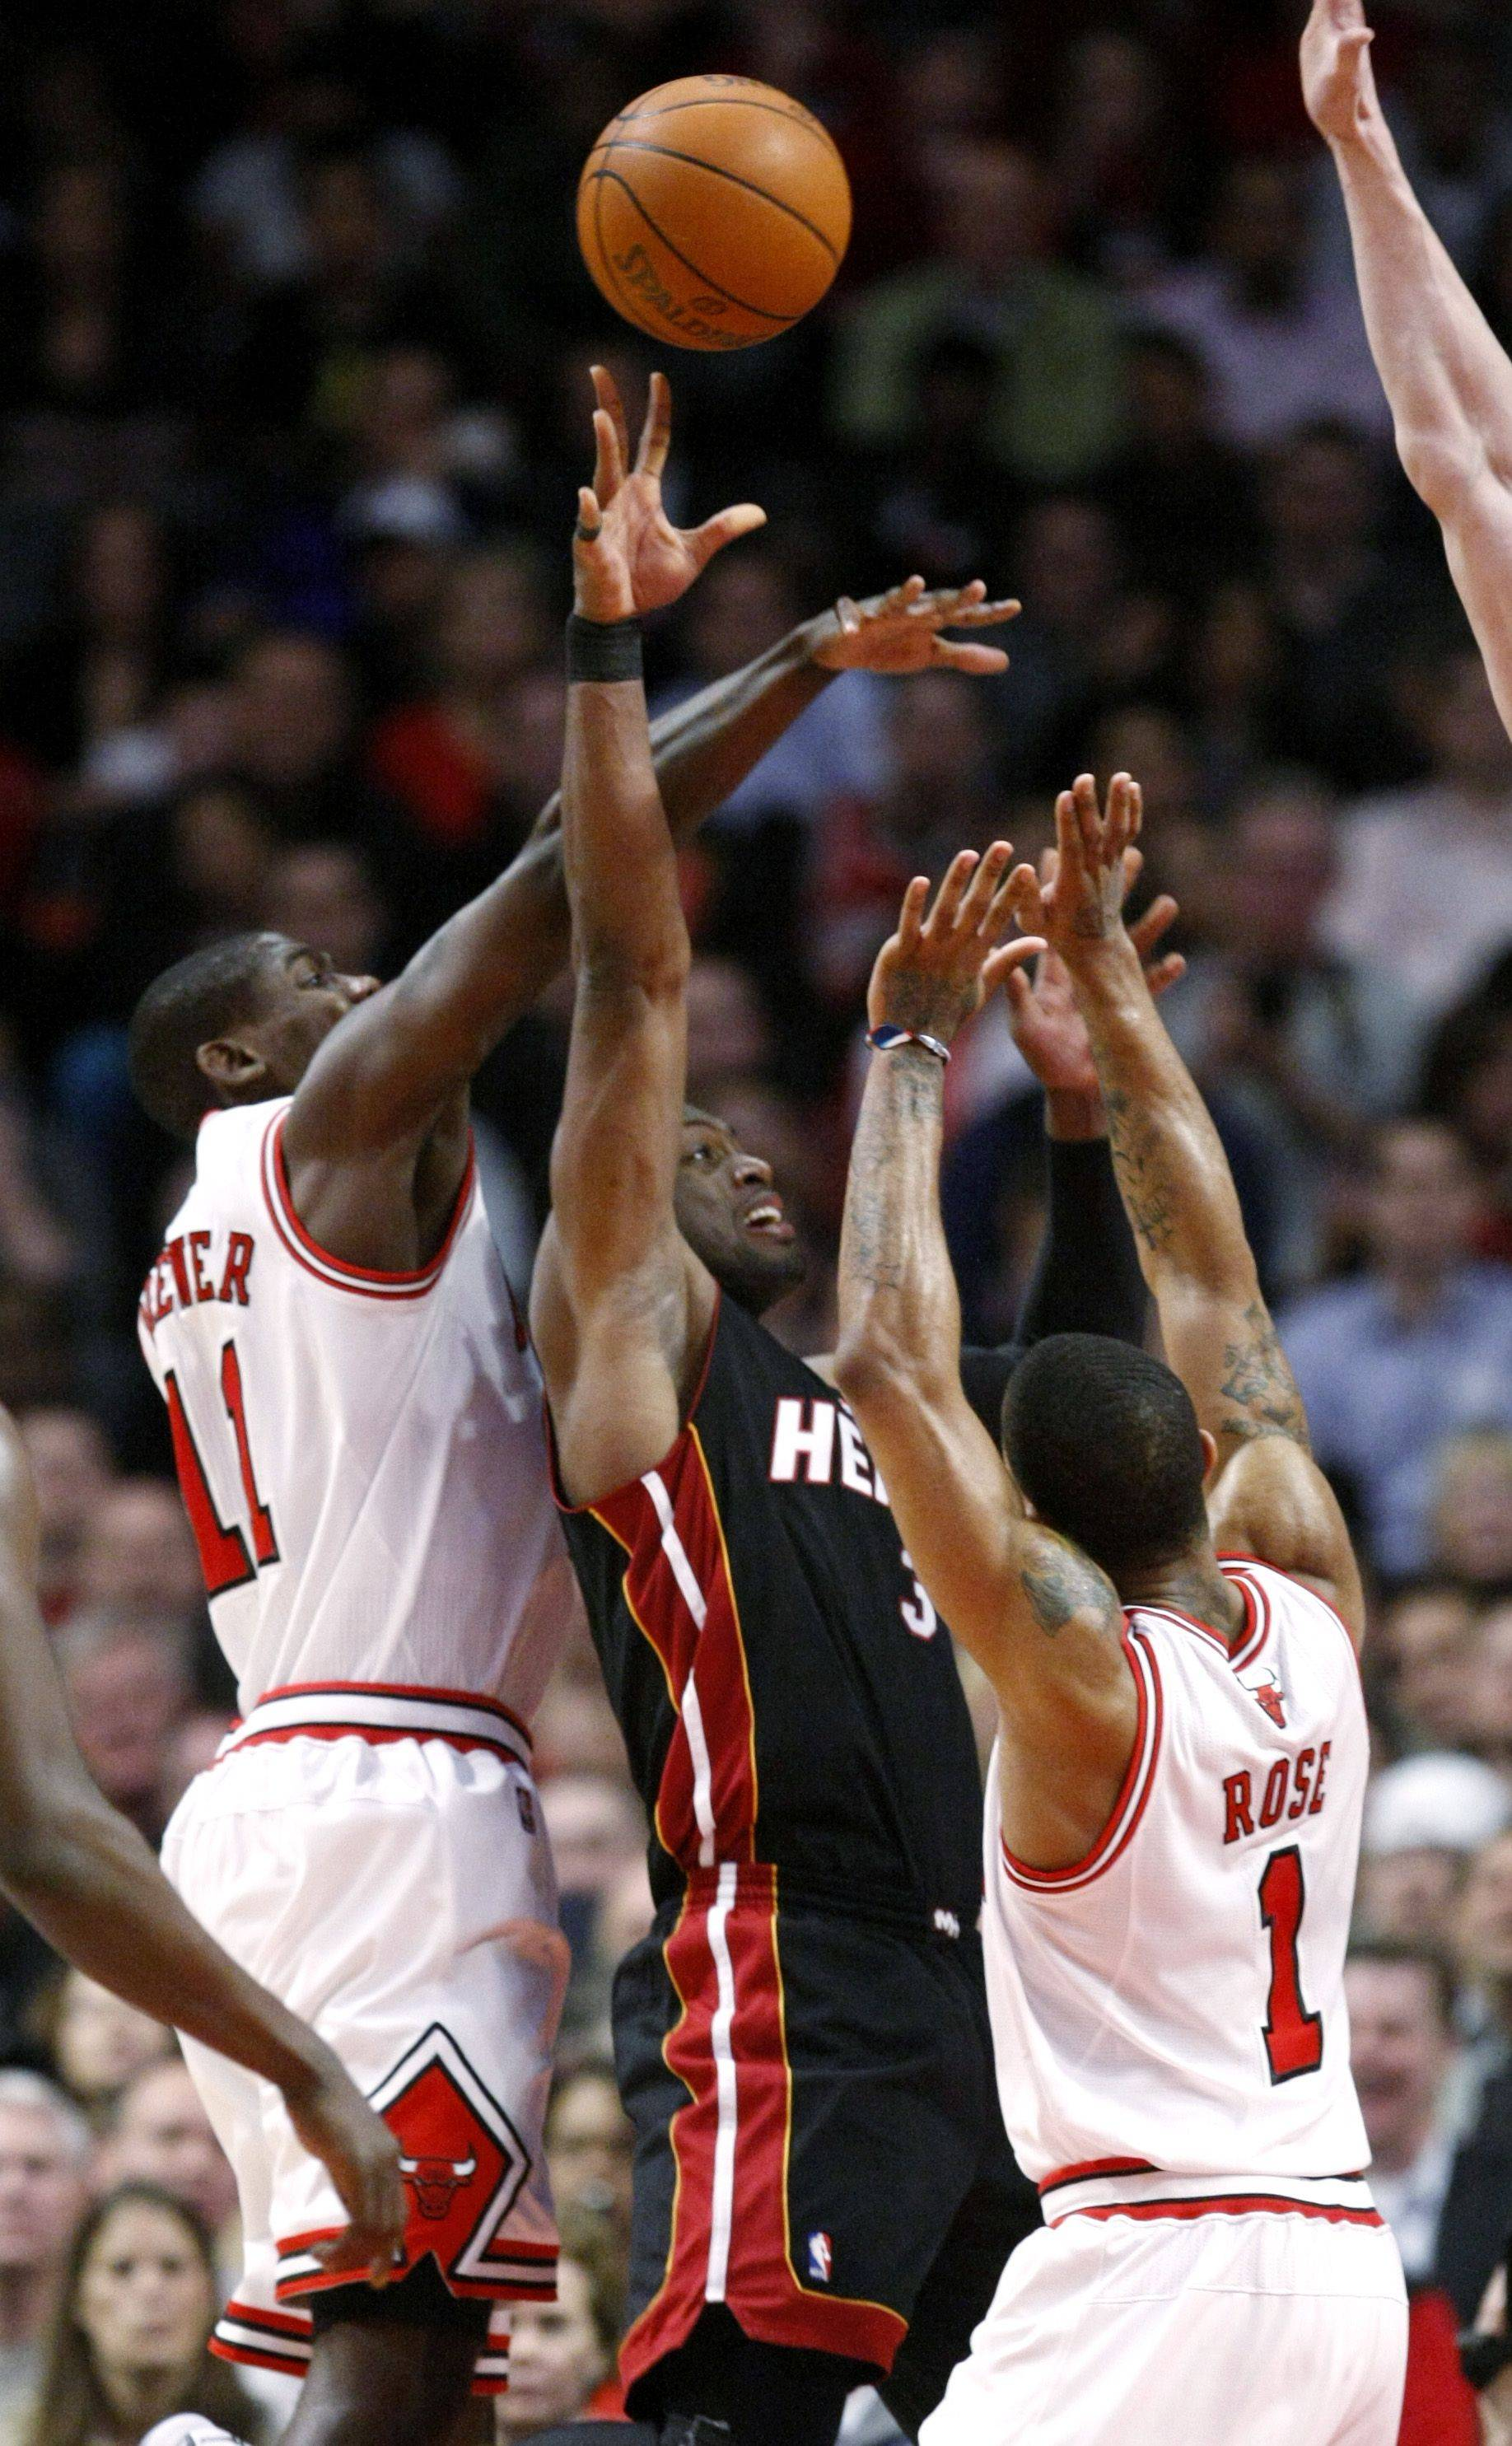 Miami Heat guard Dwyane Wade, center, puts up a shot between Chicago Bulls' Ronnie Brewer, left, and Derrick Rose, during the second half of an NBA basketball game Thursday, Feb. 24, 2011, in Chicago. The Bulls won 93-89.